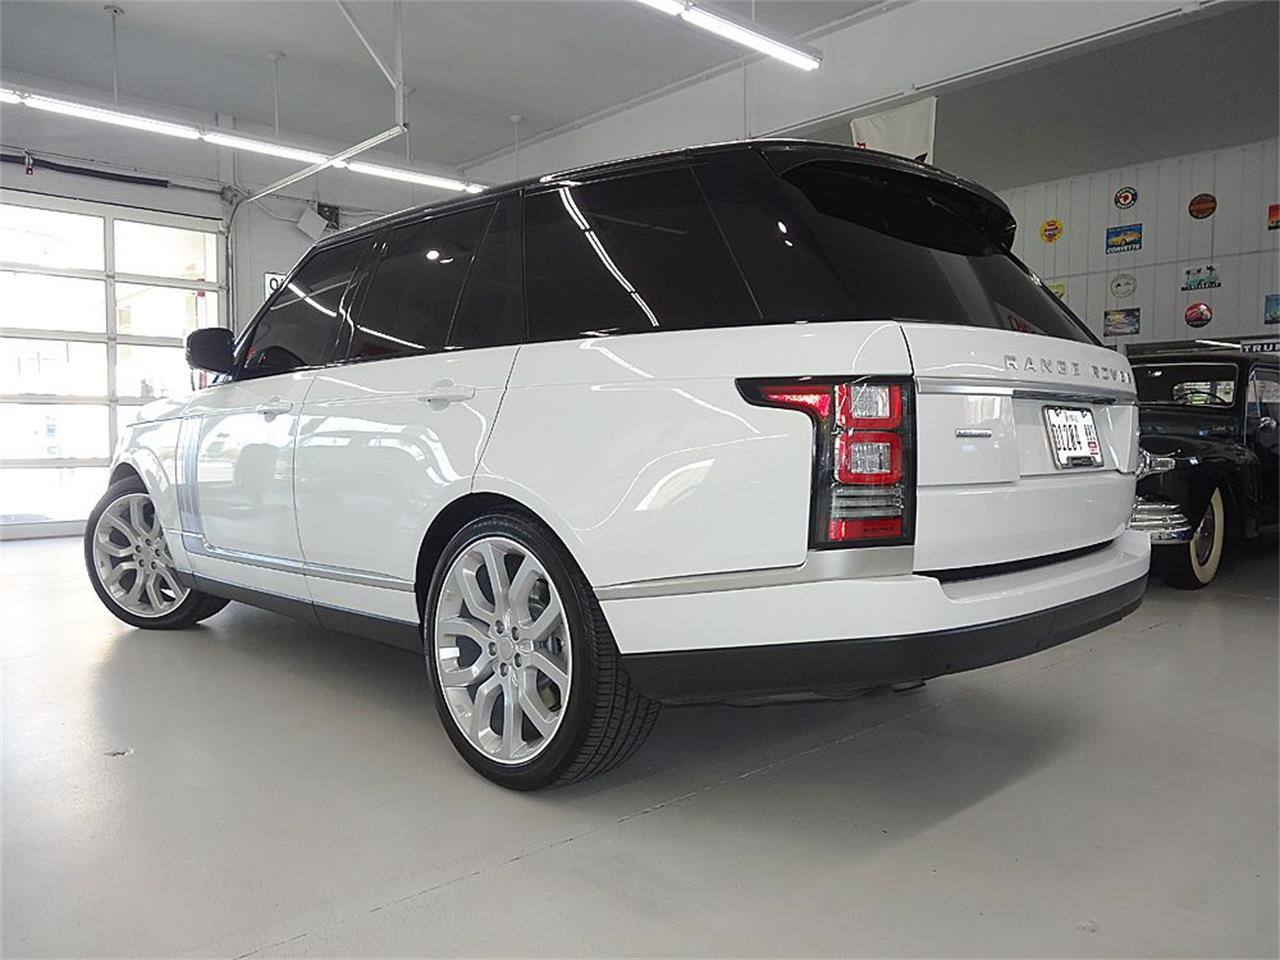 Large Picture of '14 RANGE ROVER SUPERCHARGED located in Iowa - $80,900.00 - KJBX